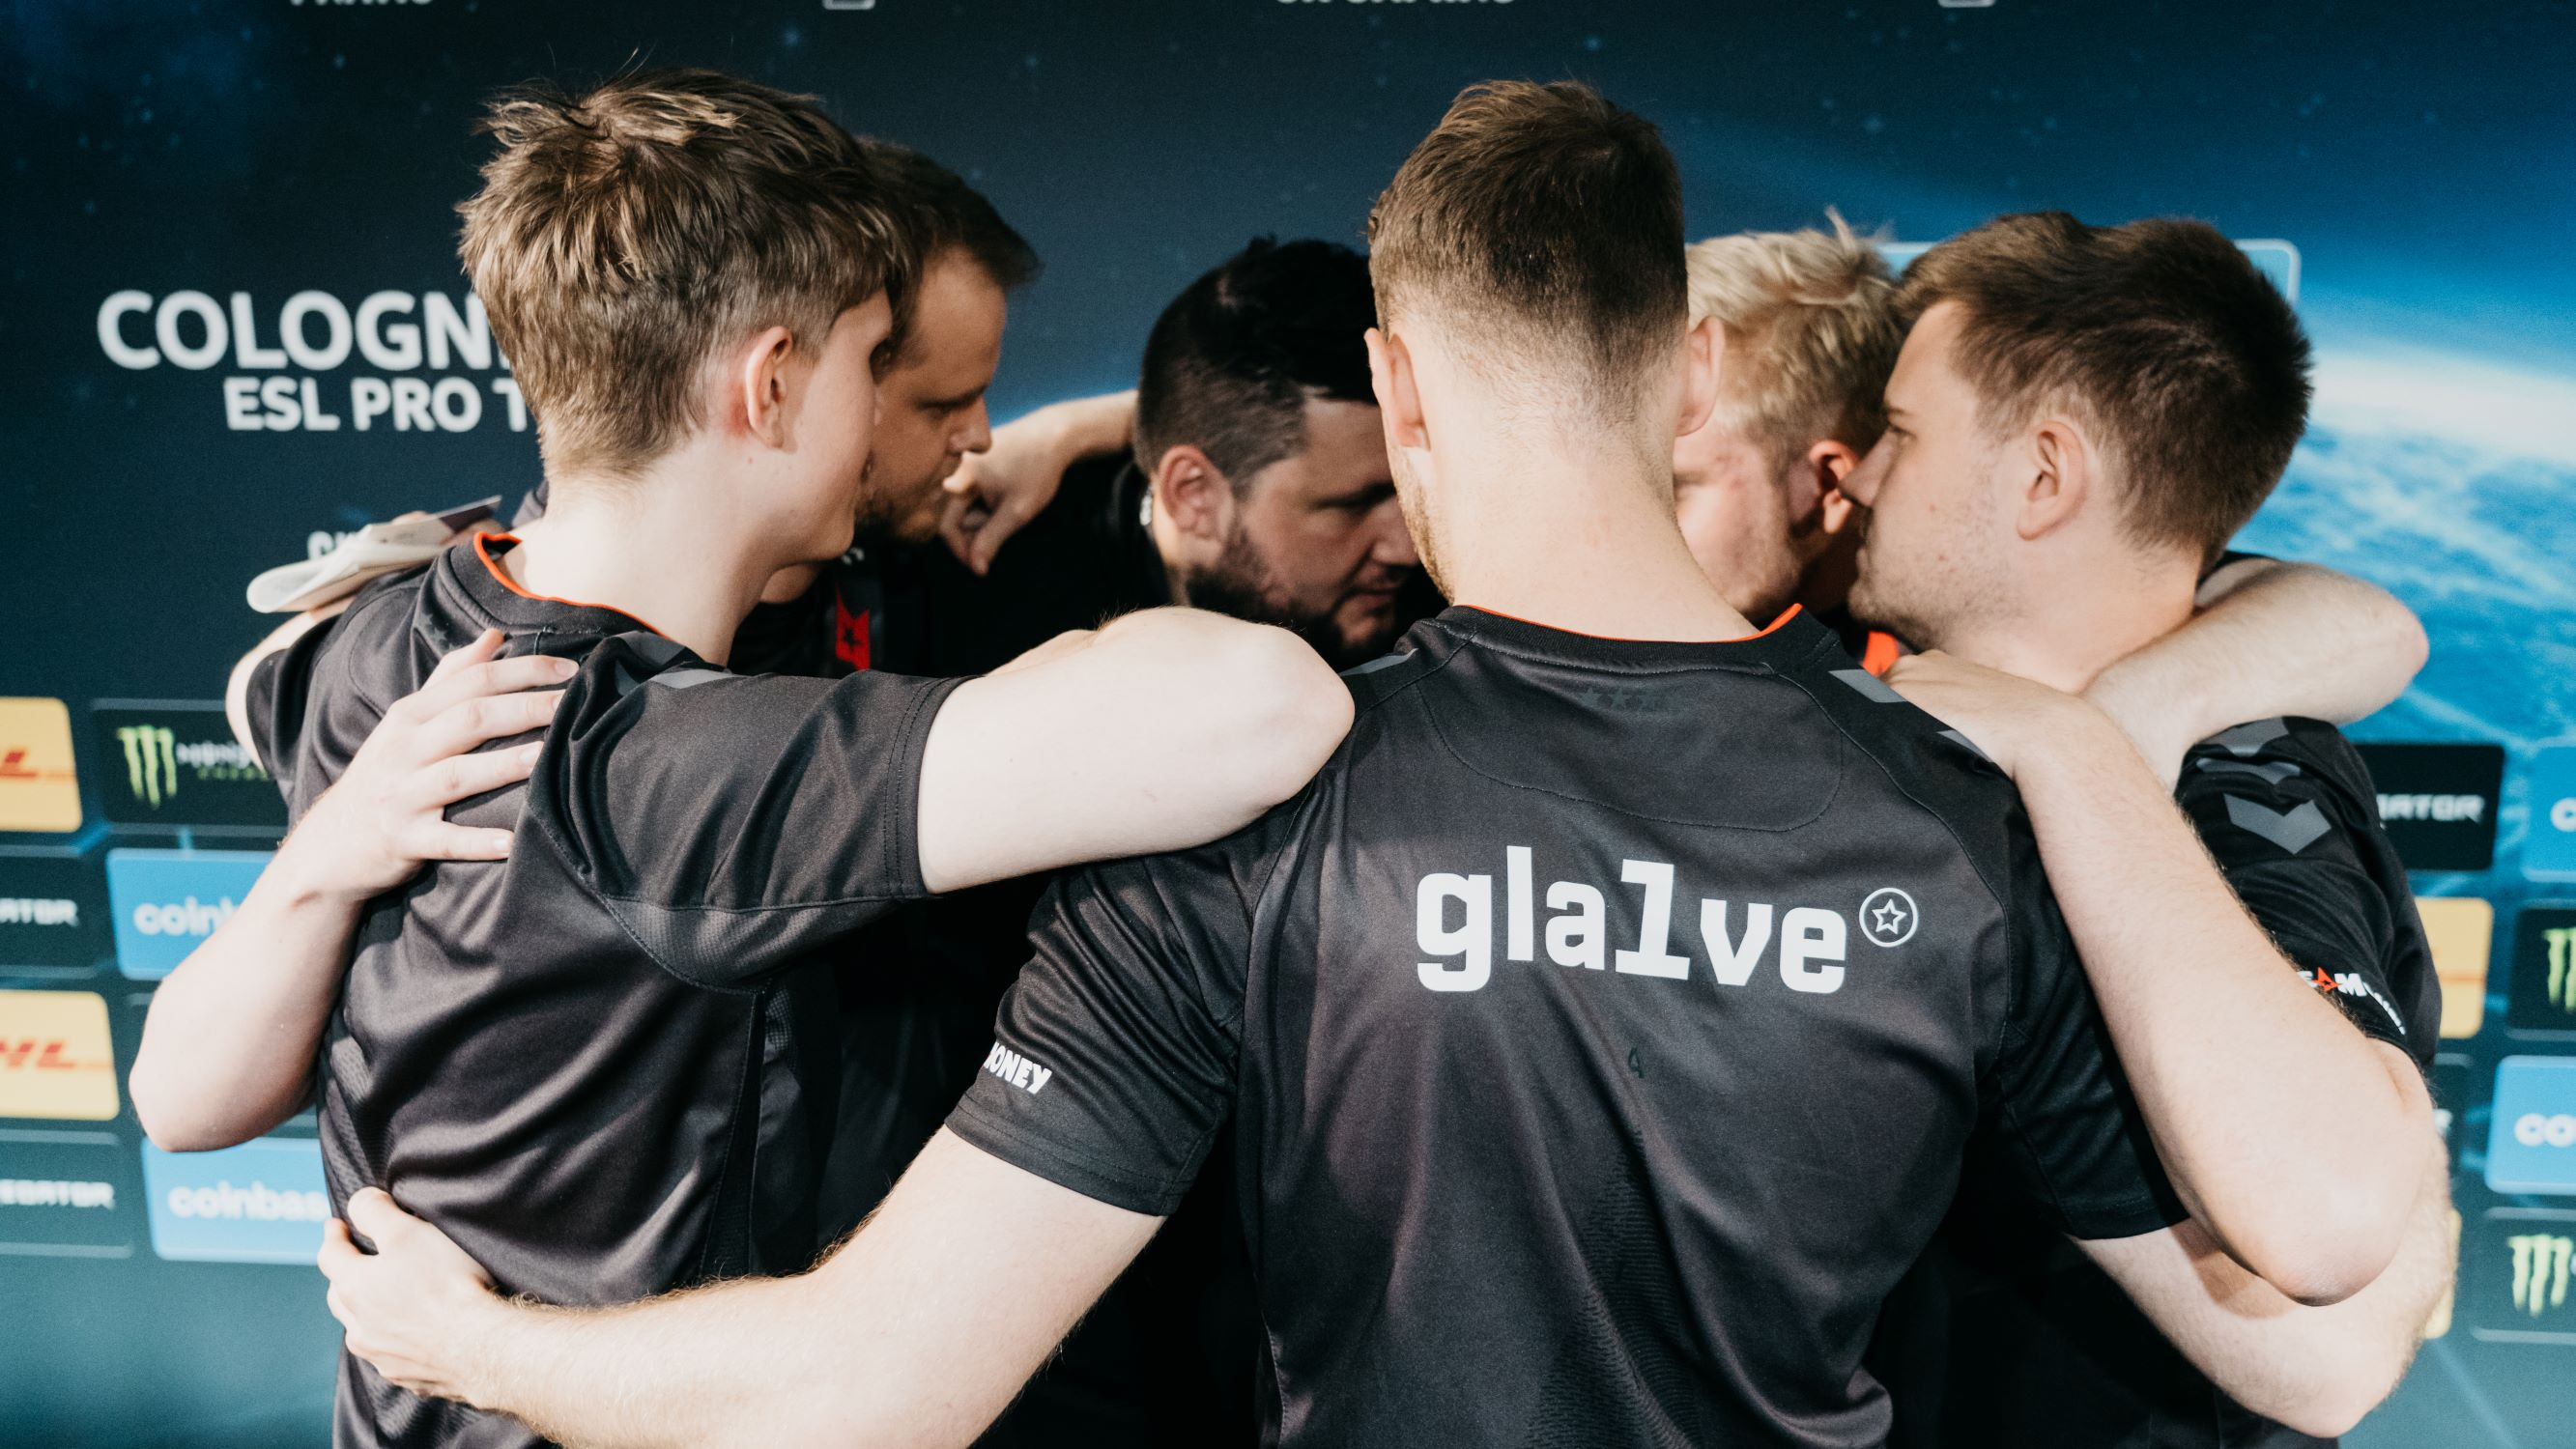 Astralis Captain: Proud Of The Team